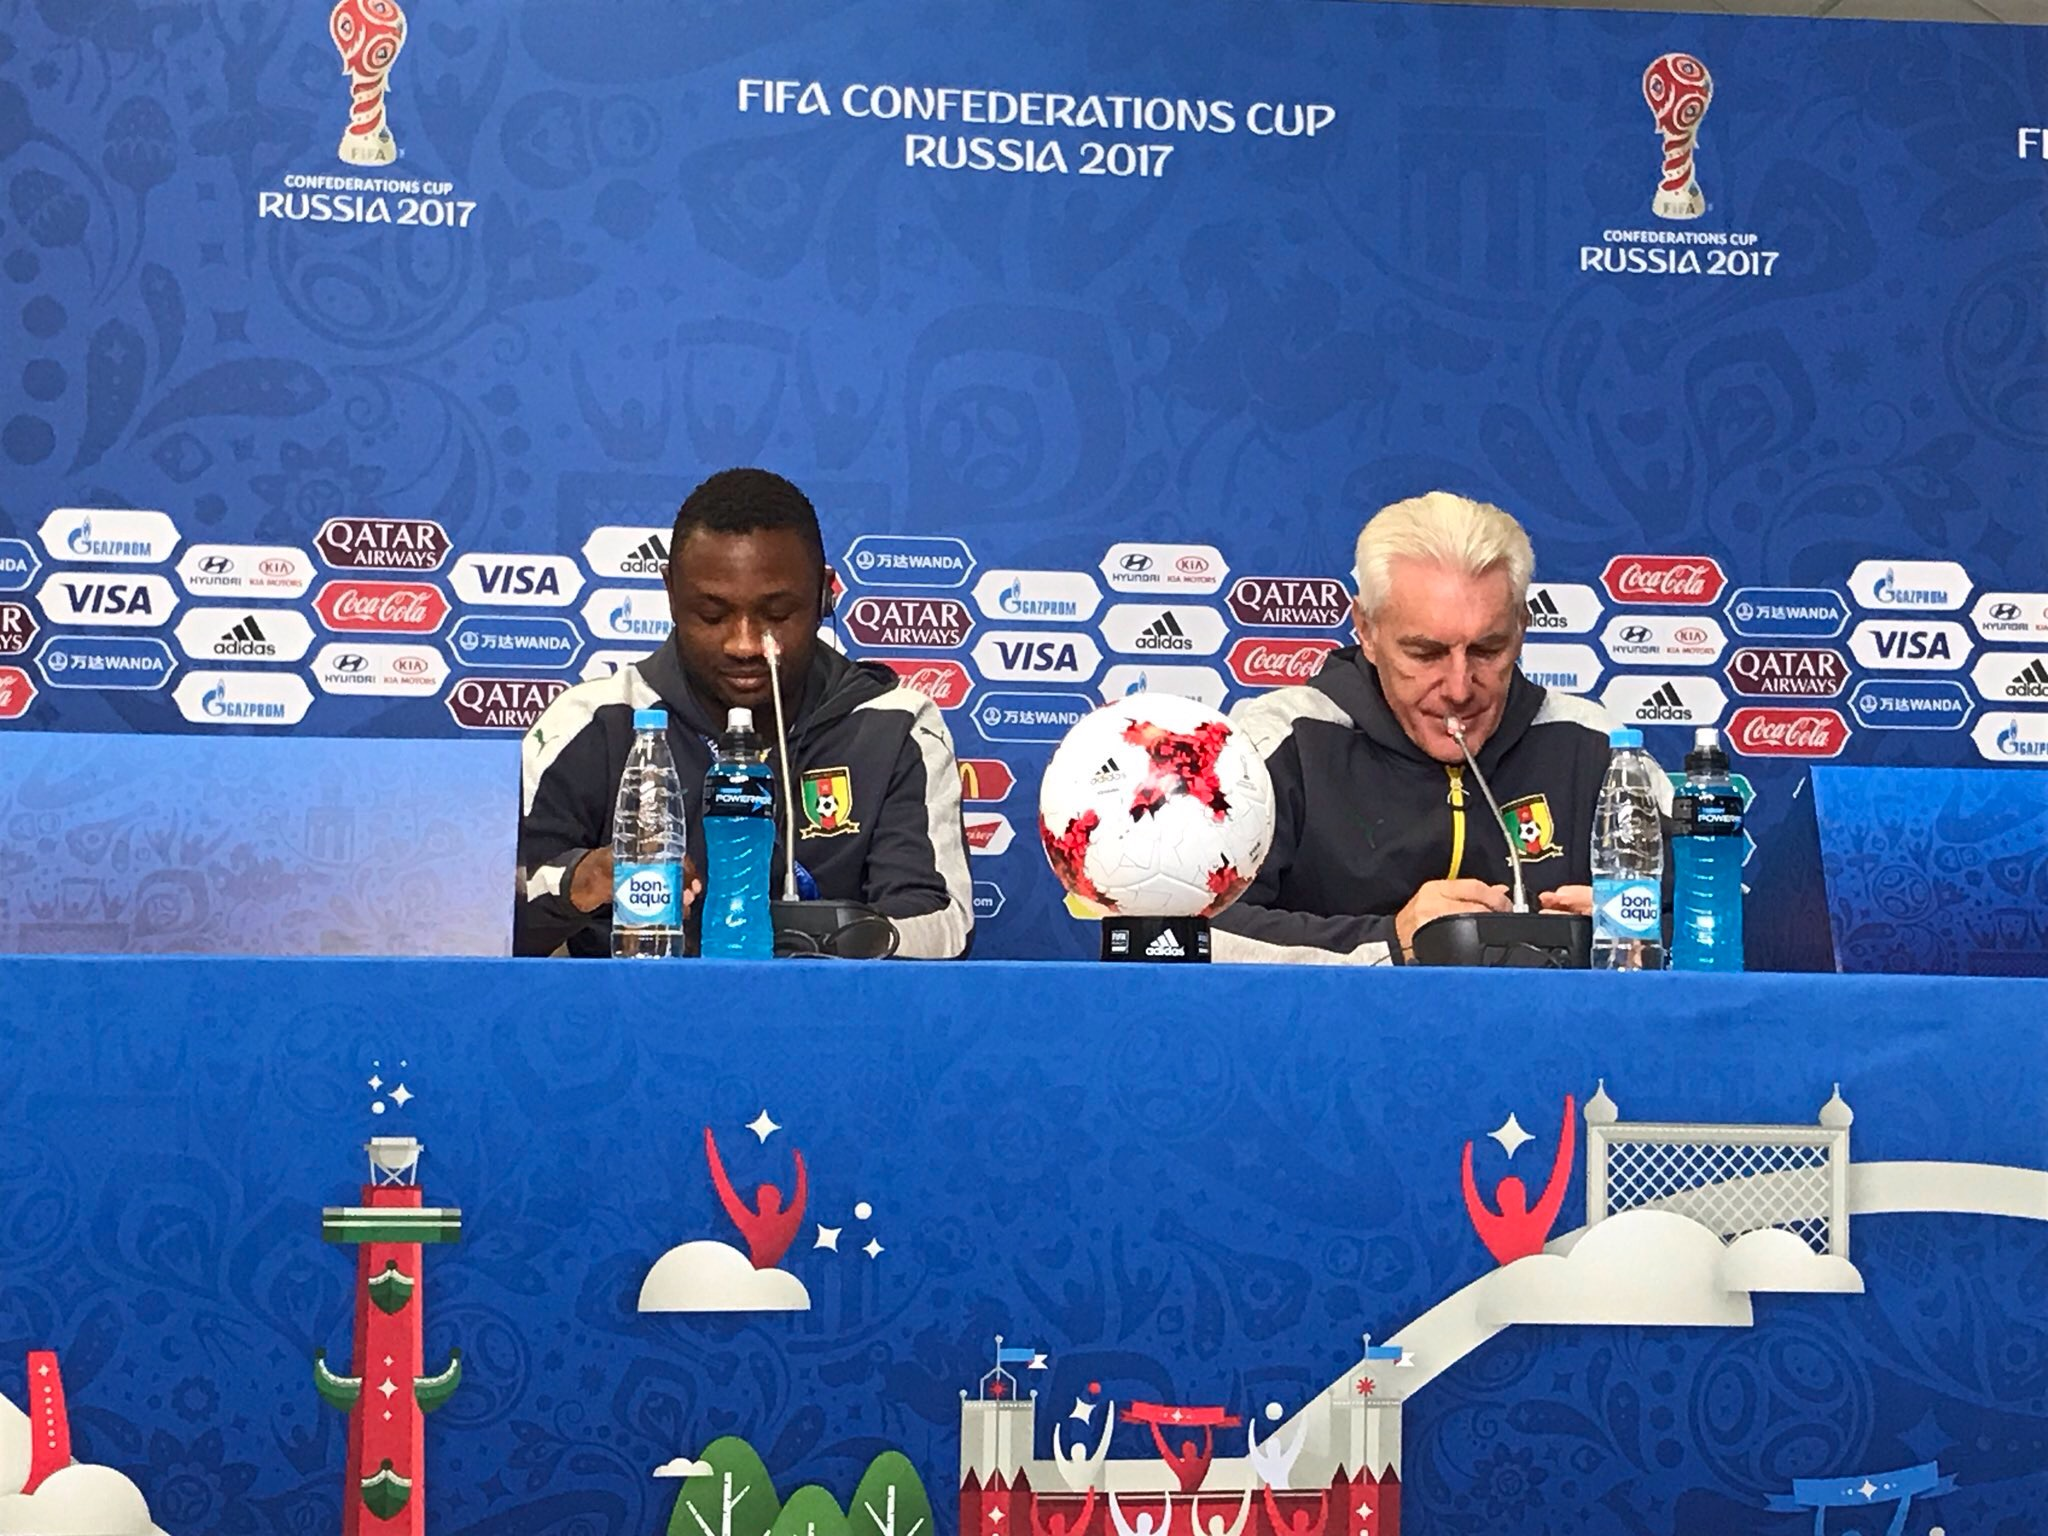 Broos Mouths Cameroon's Positive And Negative Experiences At Confederations Cup